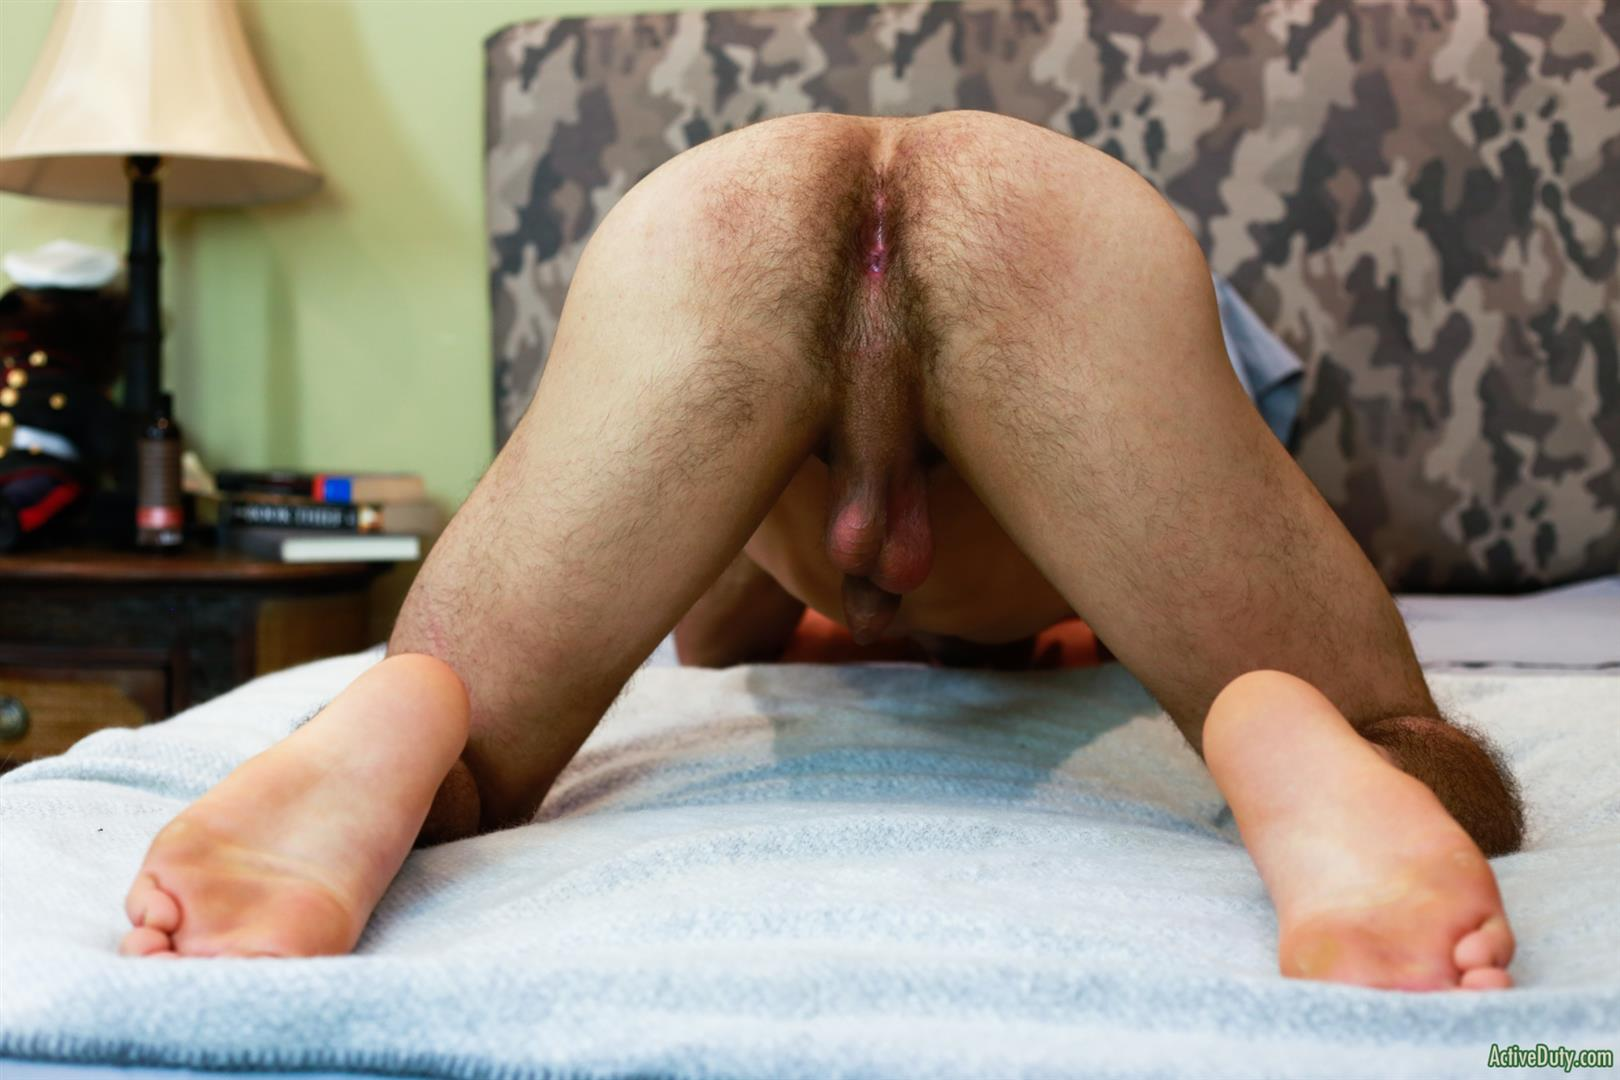 Active-Duty-Monte-Marcello-Big-Uncut-Dick-Soldier-Jerking-Off-With-Hairy-Ass-14 US Army Private Jerks His Big Uncut Cock And Shows Off His Hairy Hole